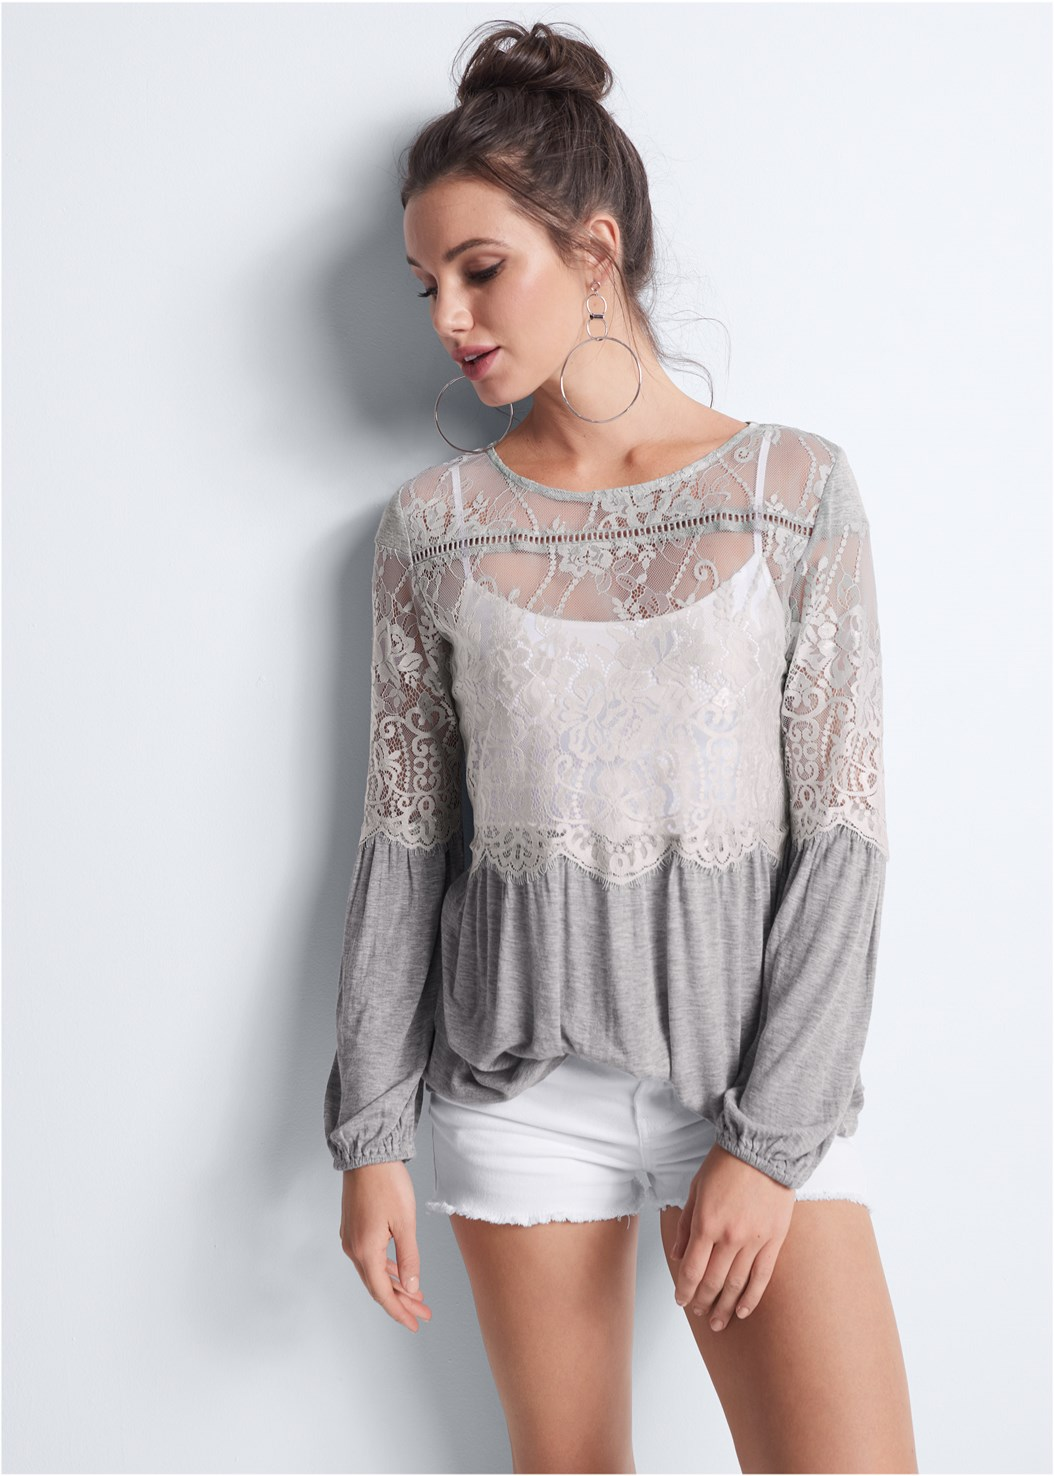 Sheer Lace Detail Top,Basic Cami Two Pack,Frayed Cut Off Jean Shorts,Naked T-Shirt Bra